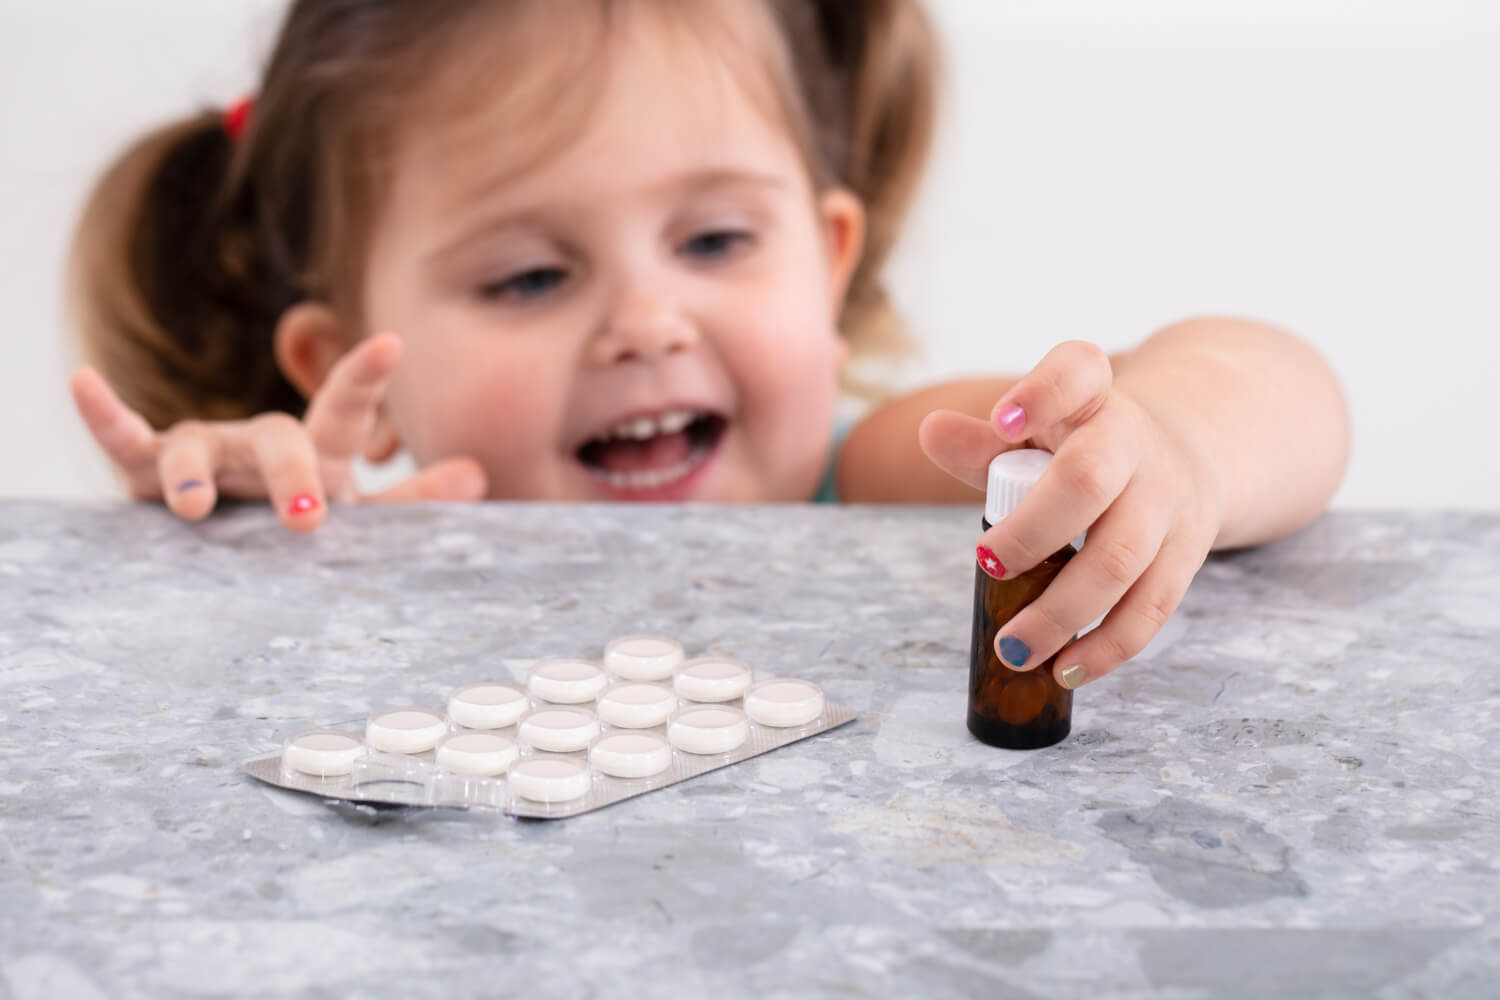 Child Safety – Store and Use Medicines Safely